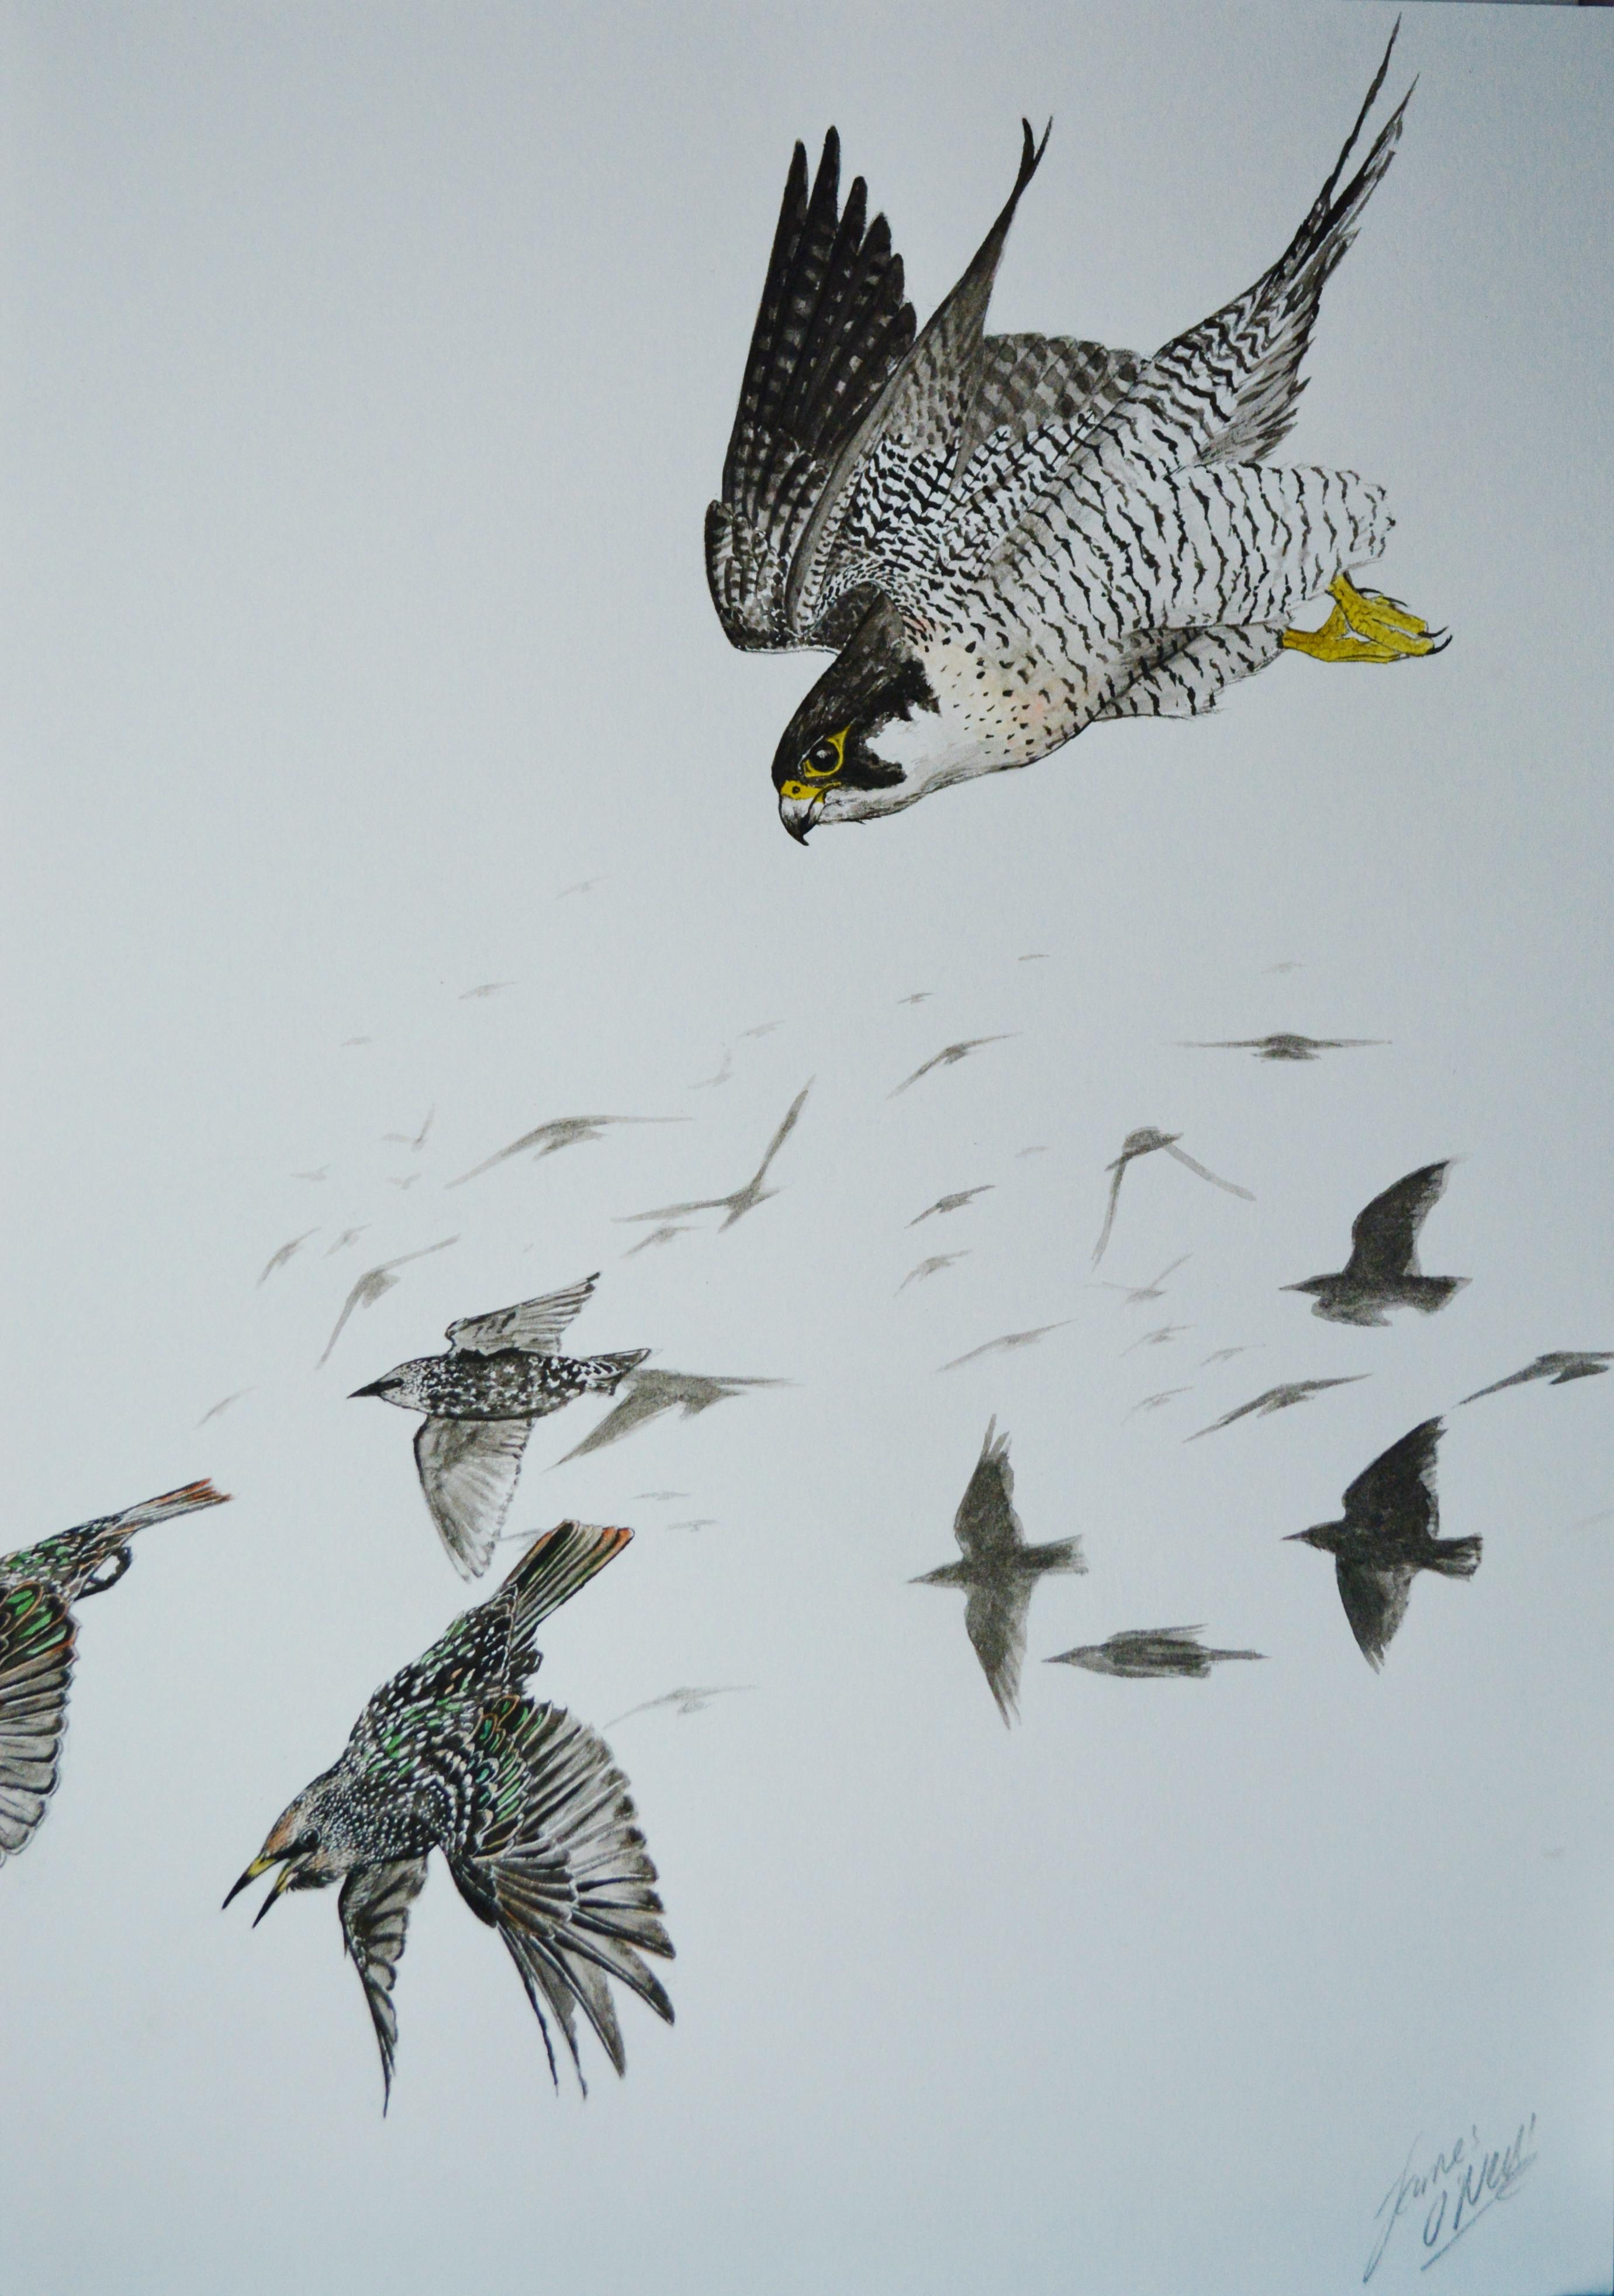 Animals And Birds Wallpaper Peregrine Falcon Hunting Starlings Watercolour A4 Art